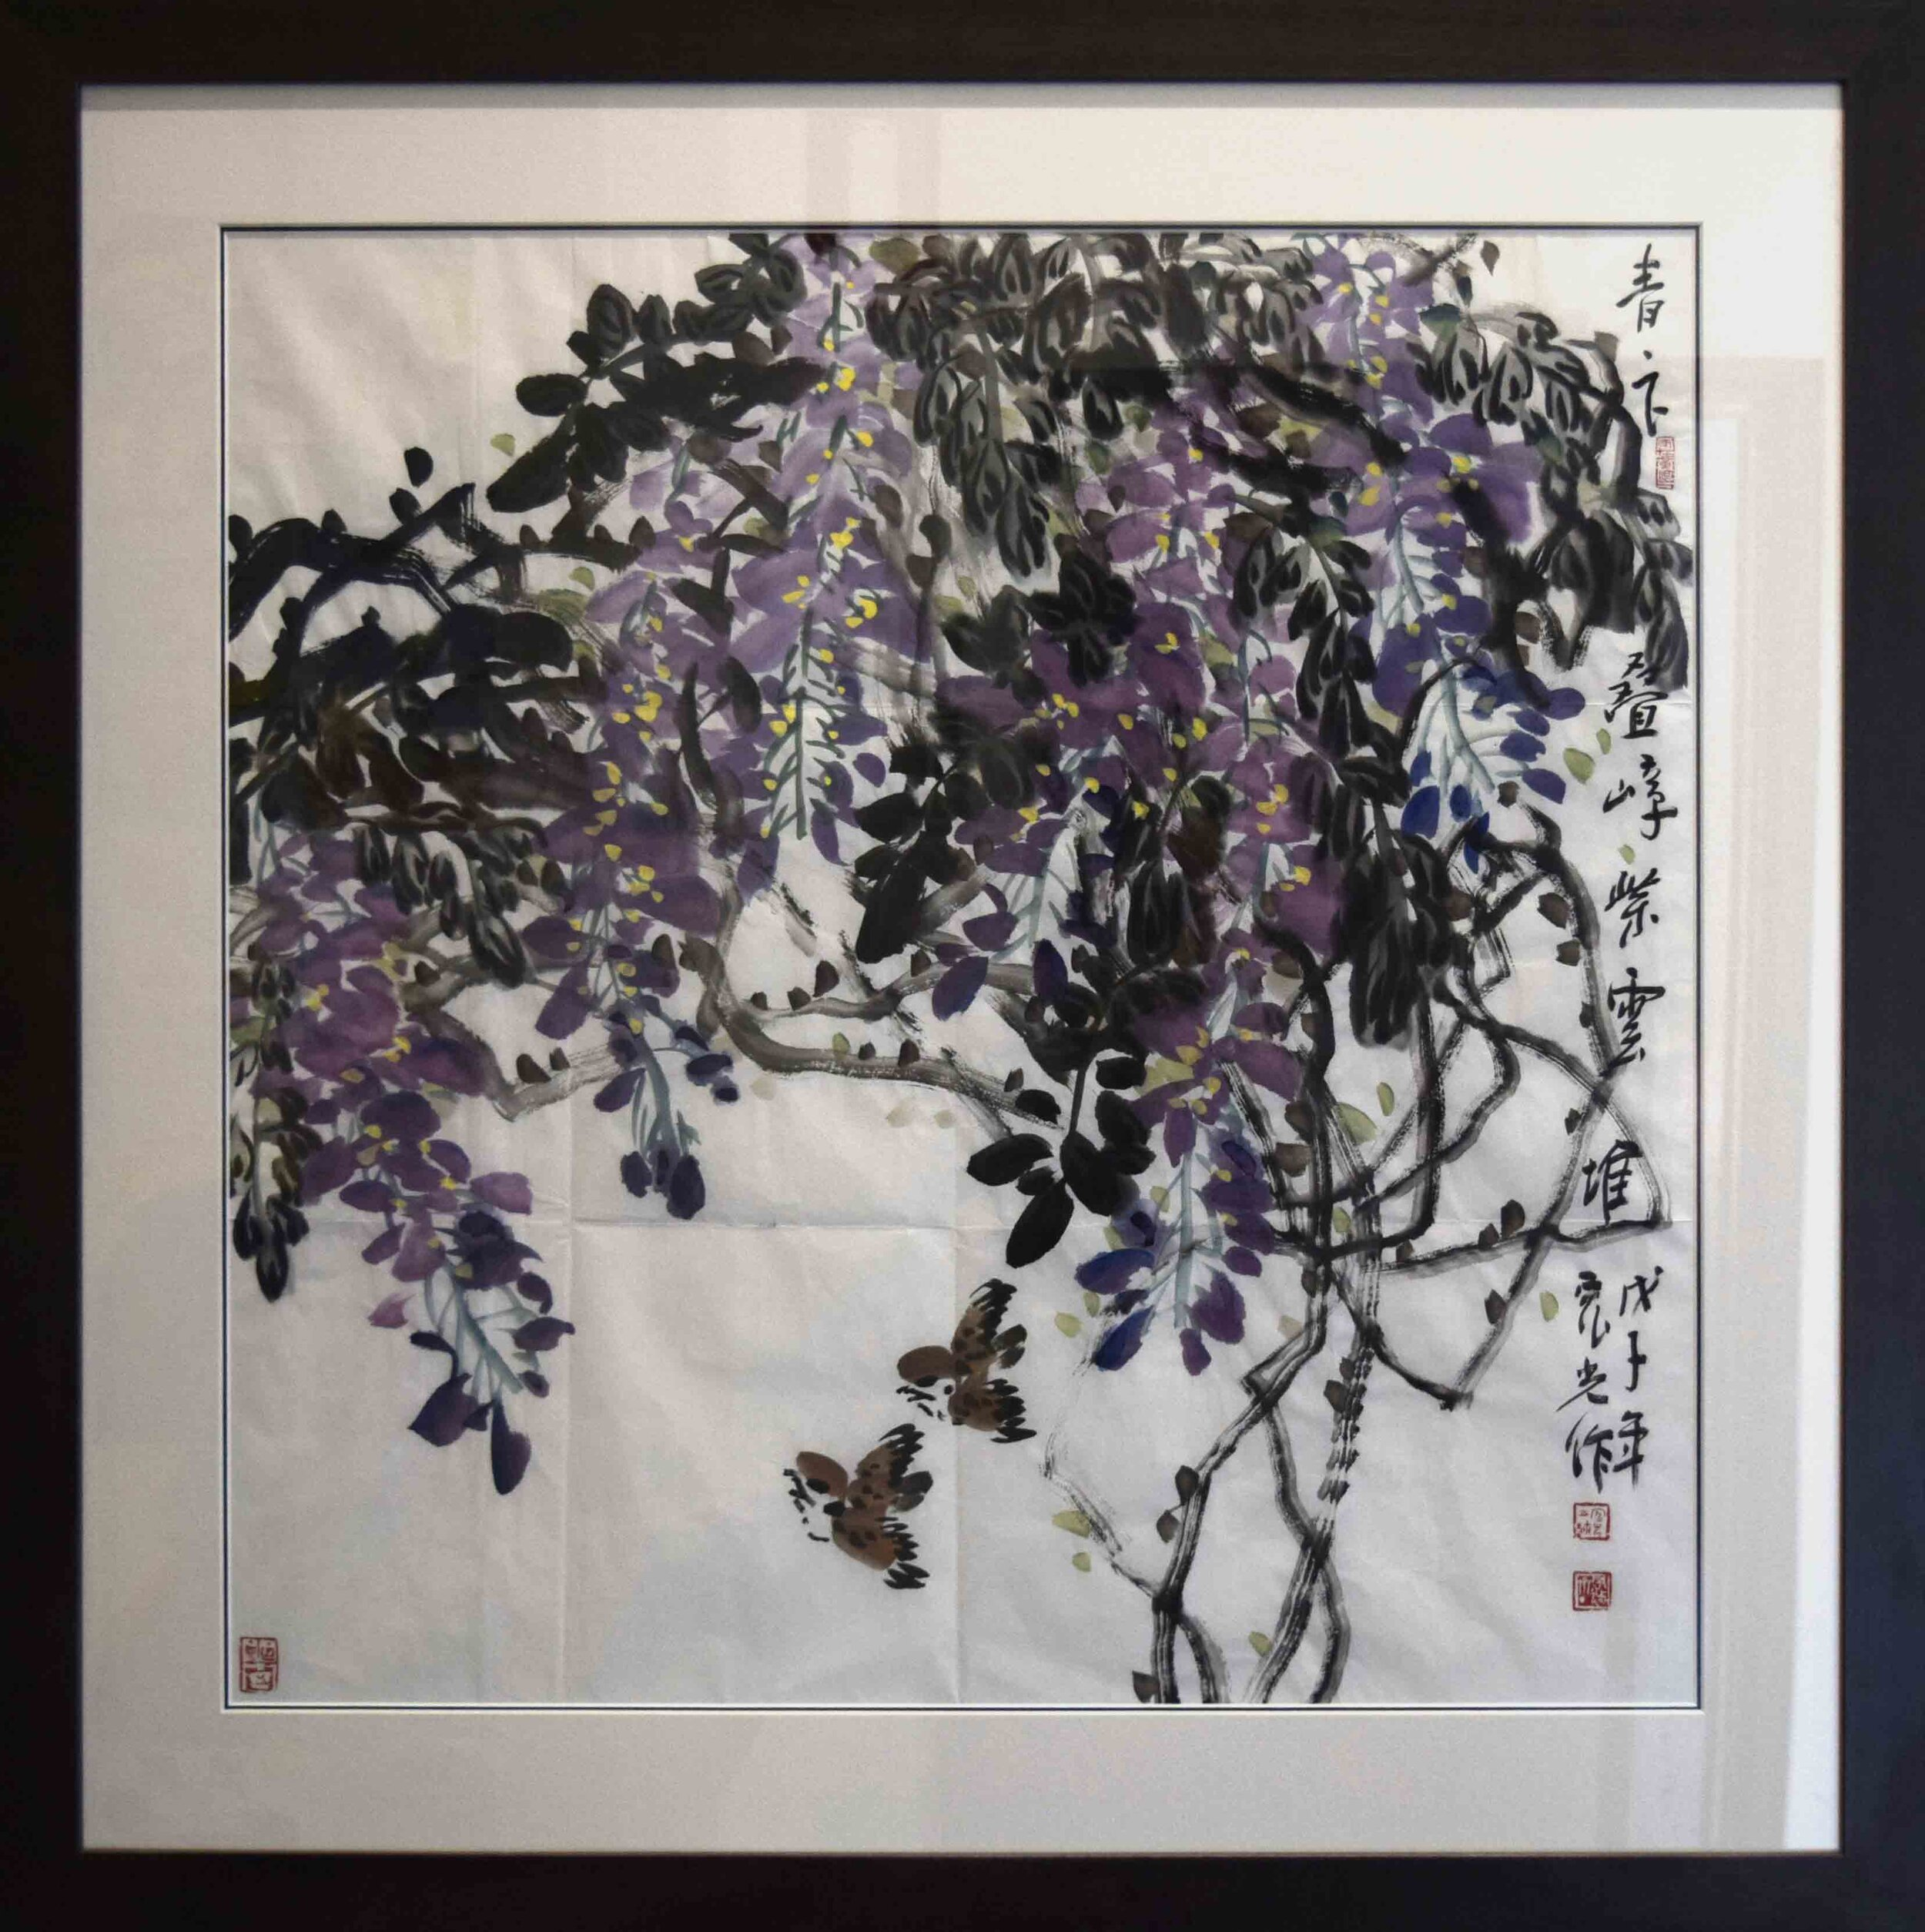 Chen Hongguang, Wisteria with Birds, 2012, ink wash on rice paper, 665 x 665 mm.